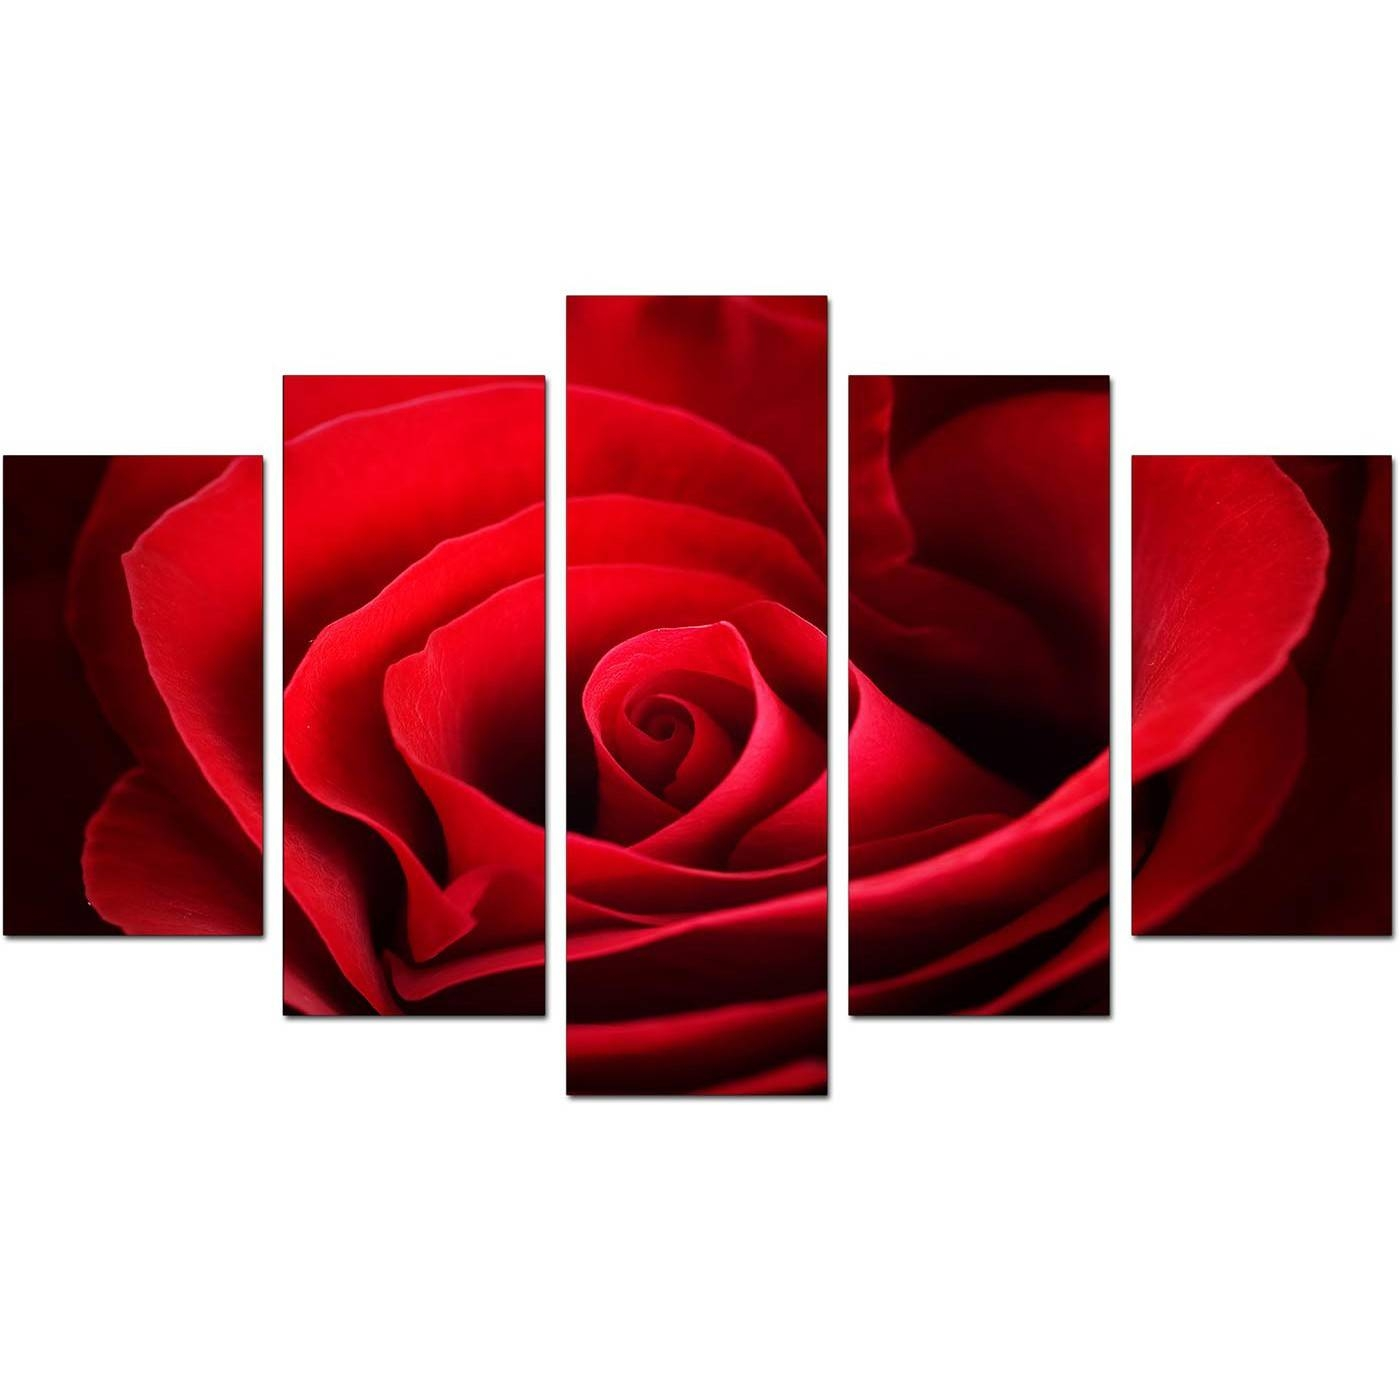 Extra Large Rose Canvas Wall Art 5 Panel In Red Inside Most Recent Rose Canvas Wall Art (View 12 of 20)